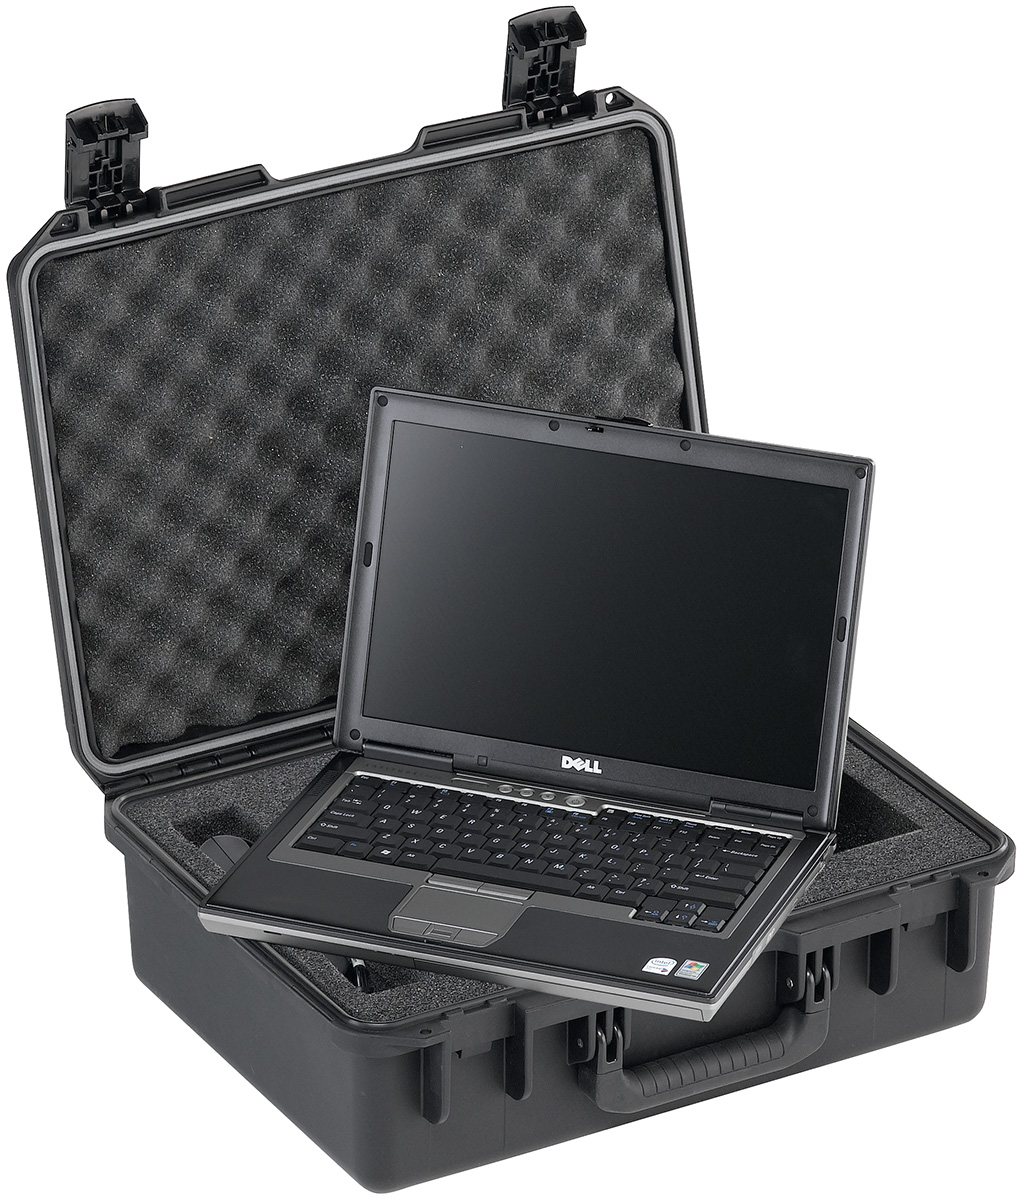 pelican military army laptop hardcase